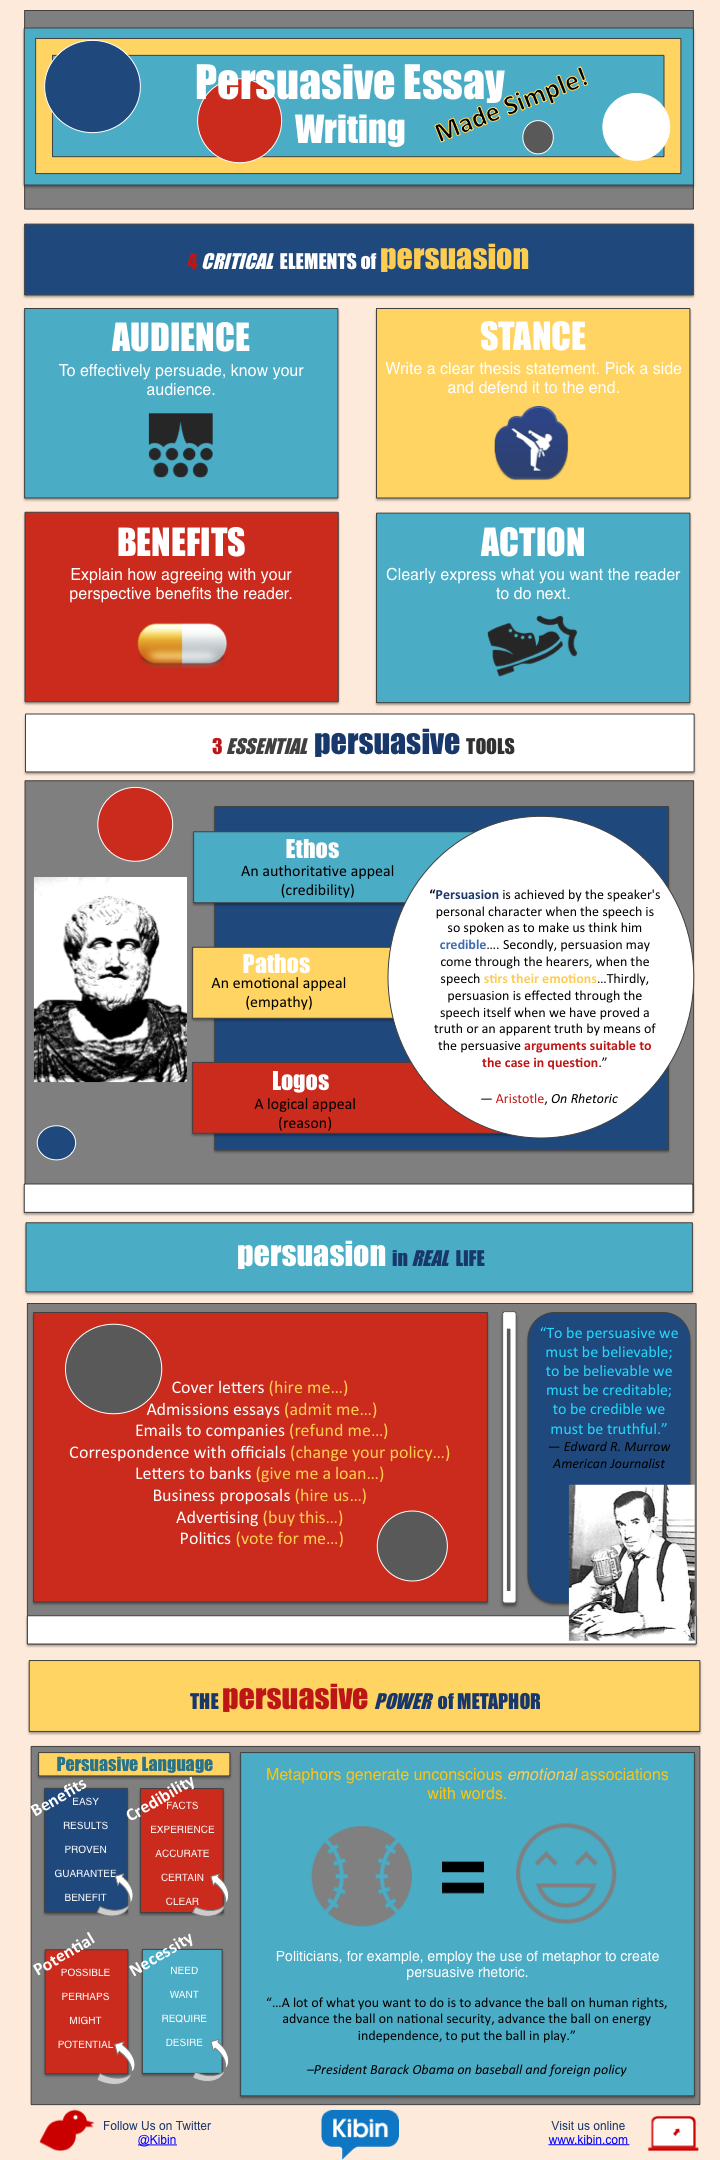 004 The Golden Rules Of Persuasive Essay Writing